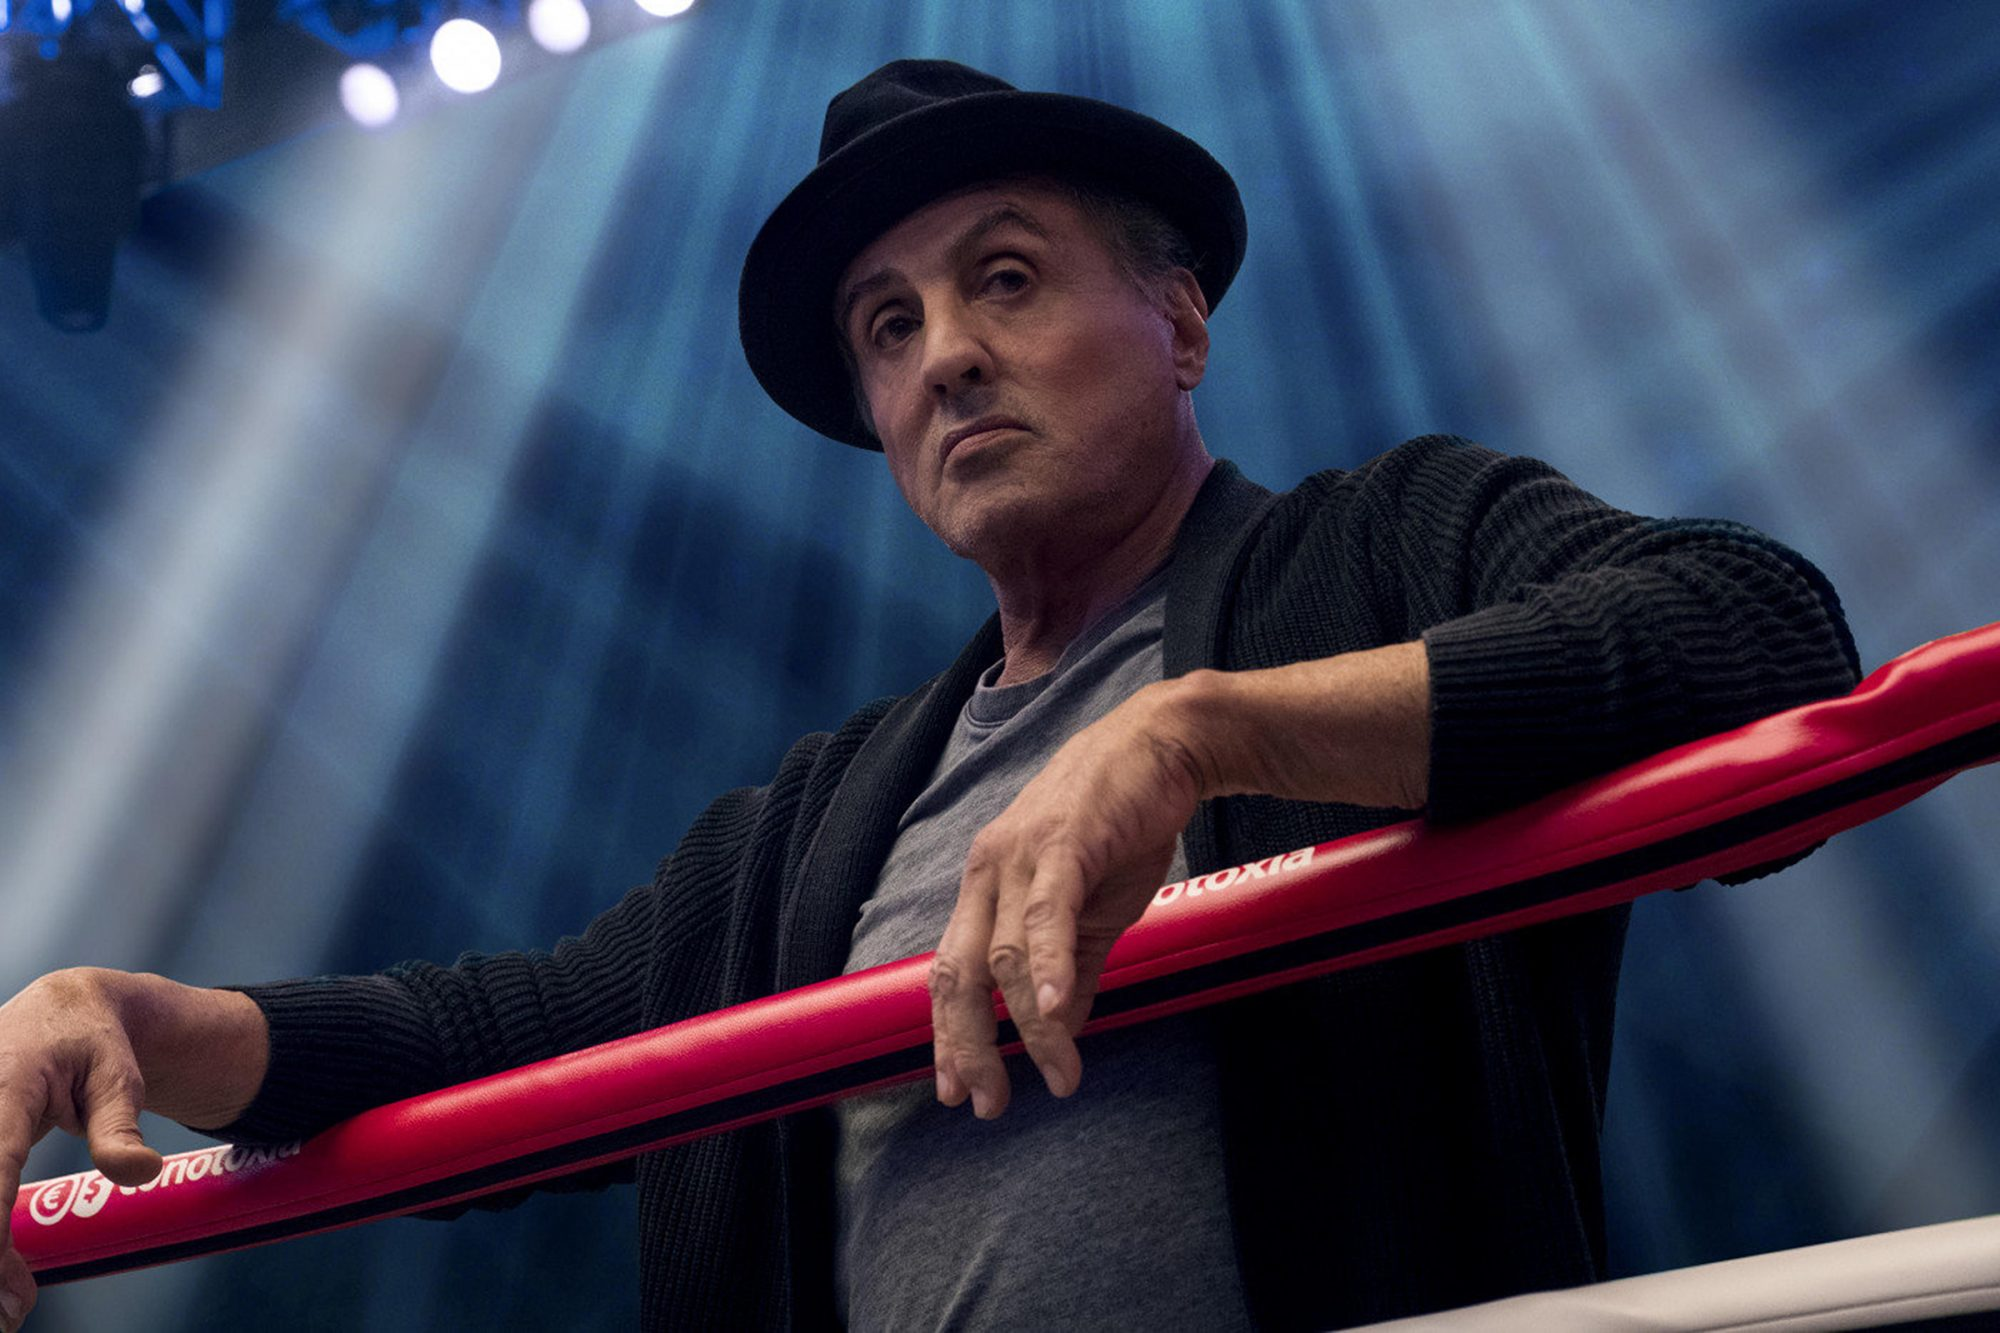 Sylvester Stallone Creed II